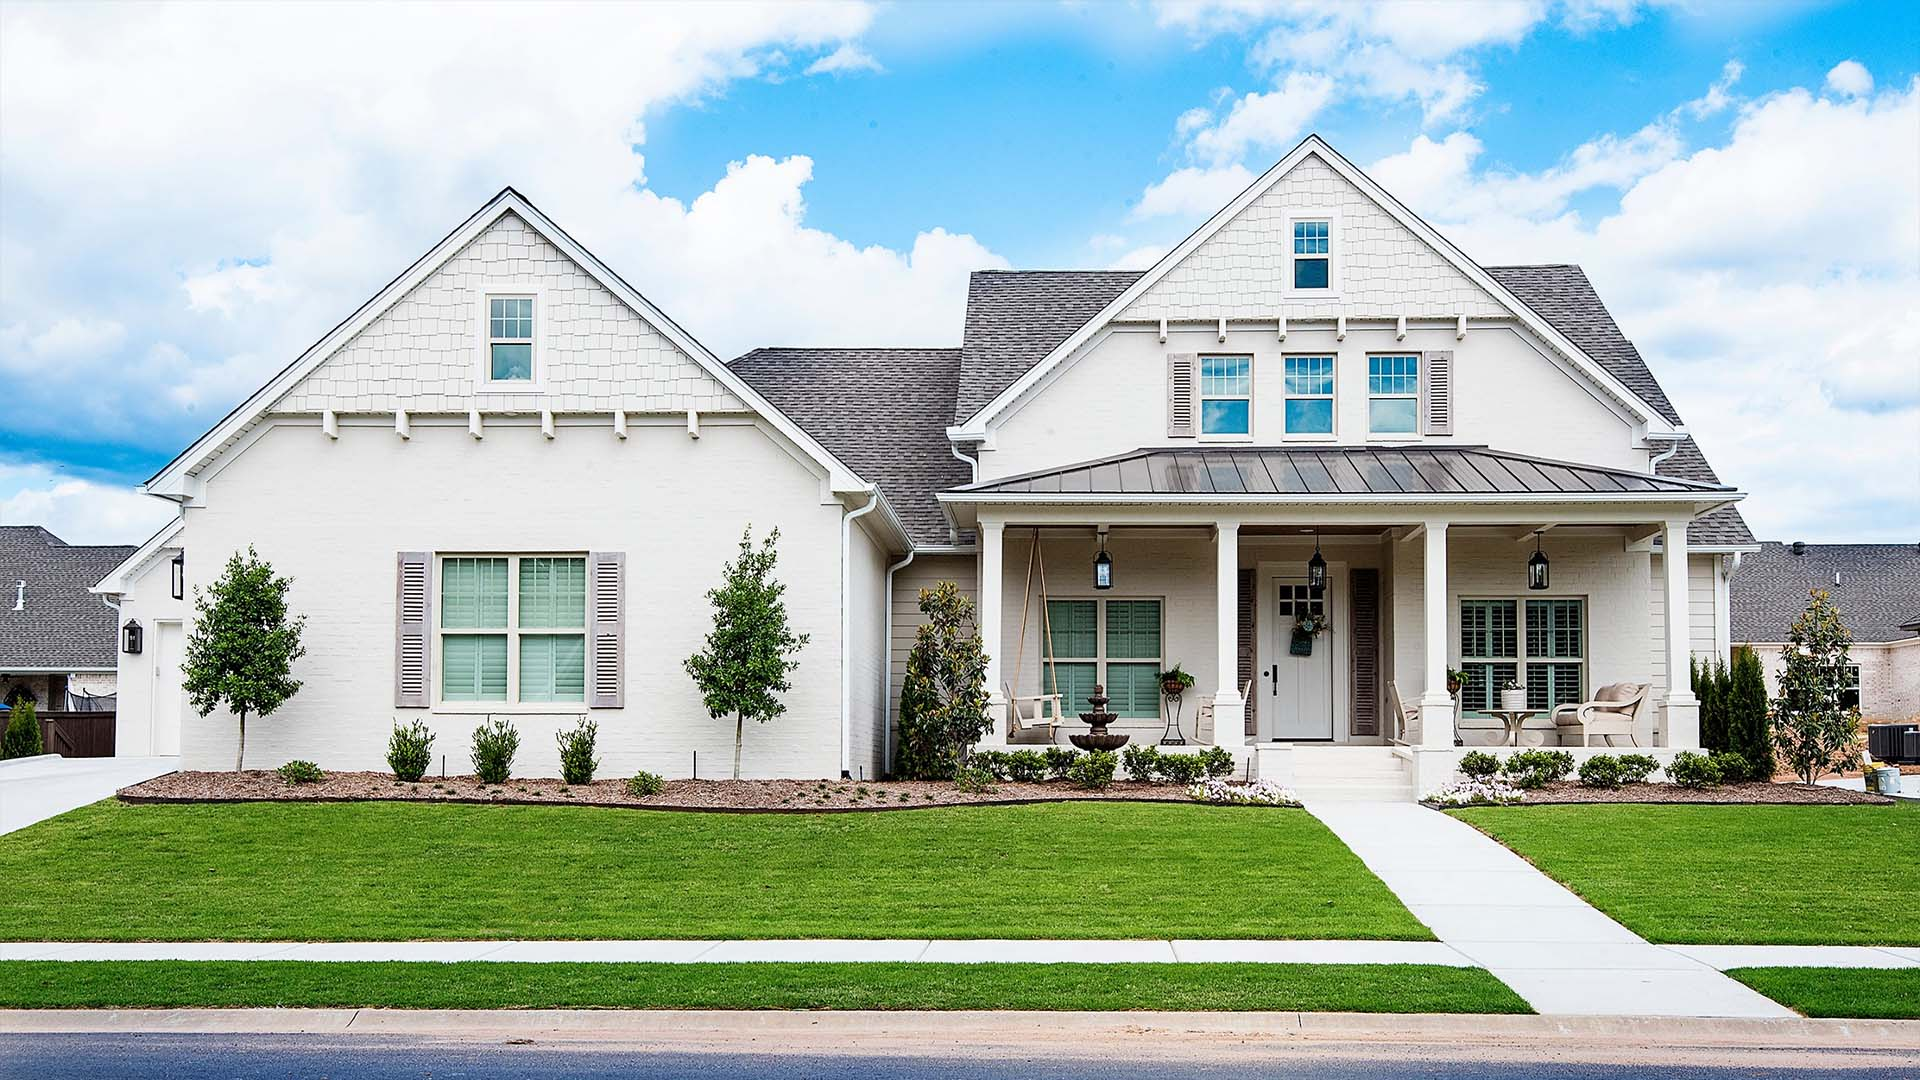 A Tom Watson Construction custom home with white features